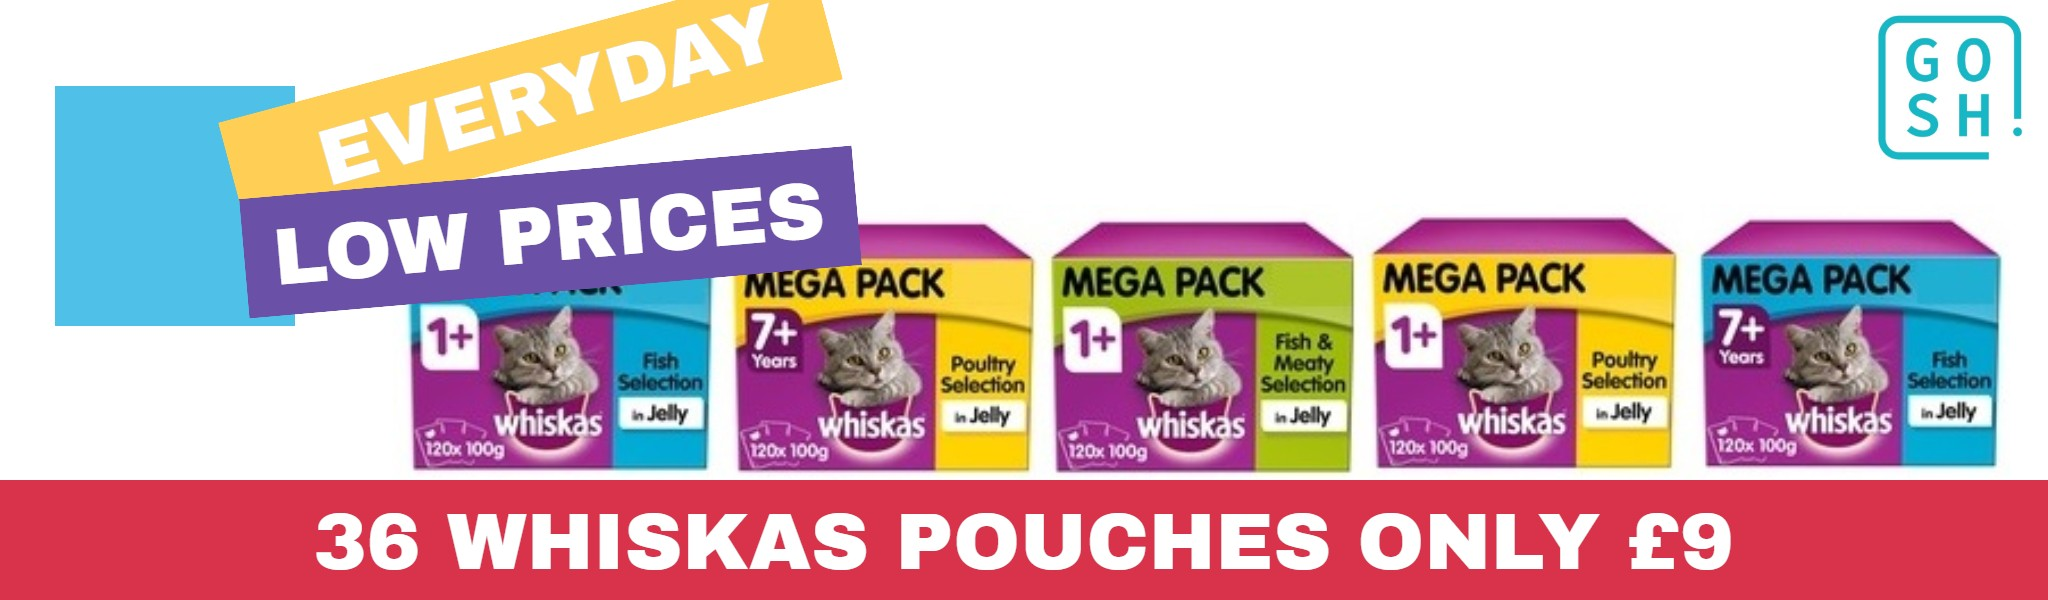 36 Whiskas Pouches Only £9